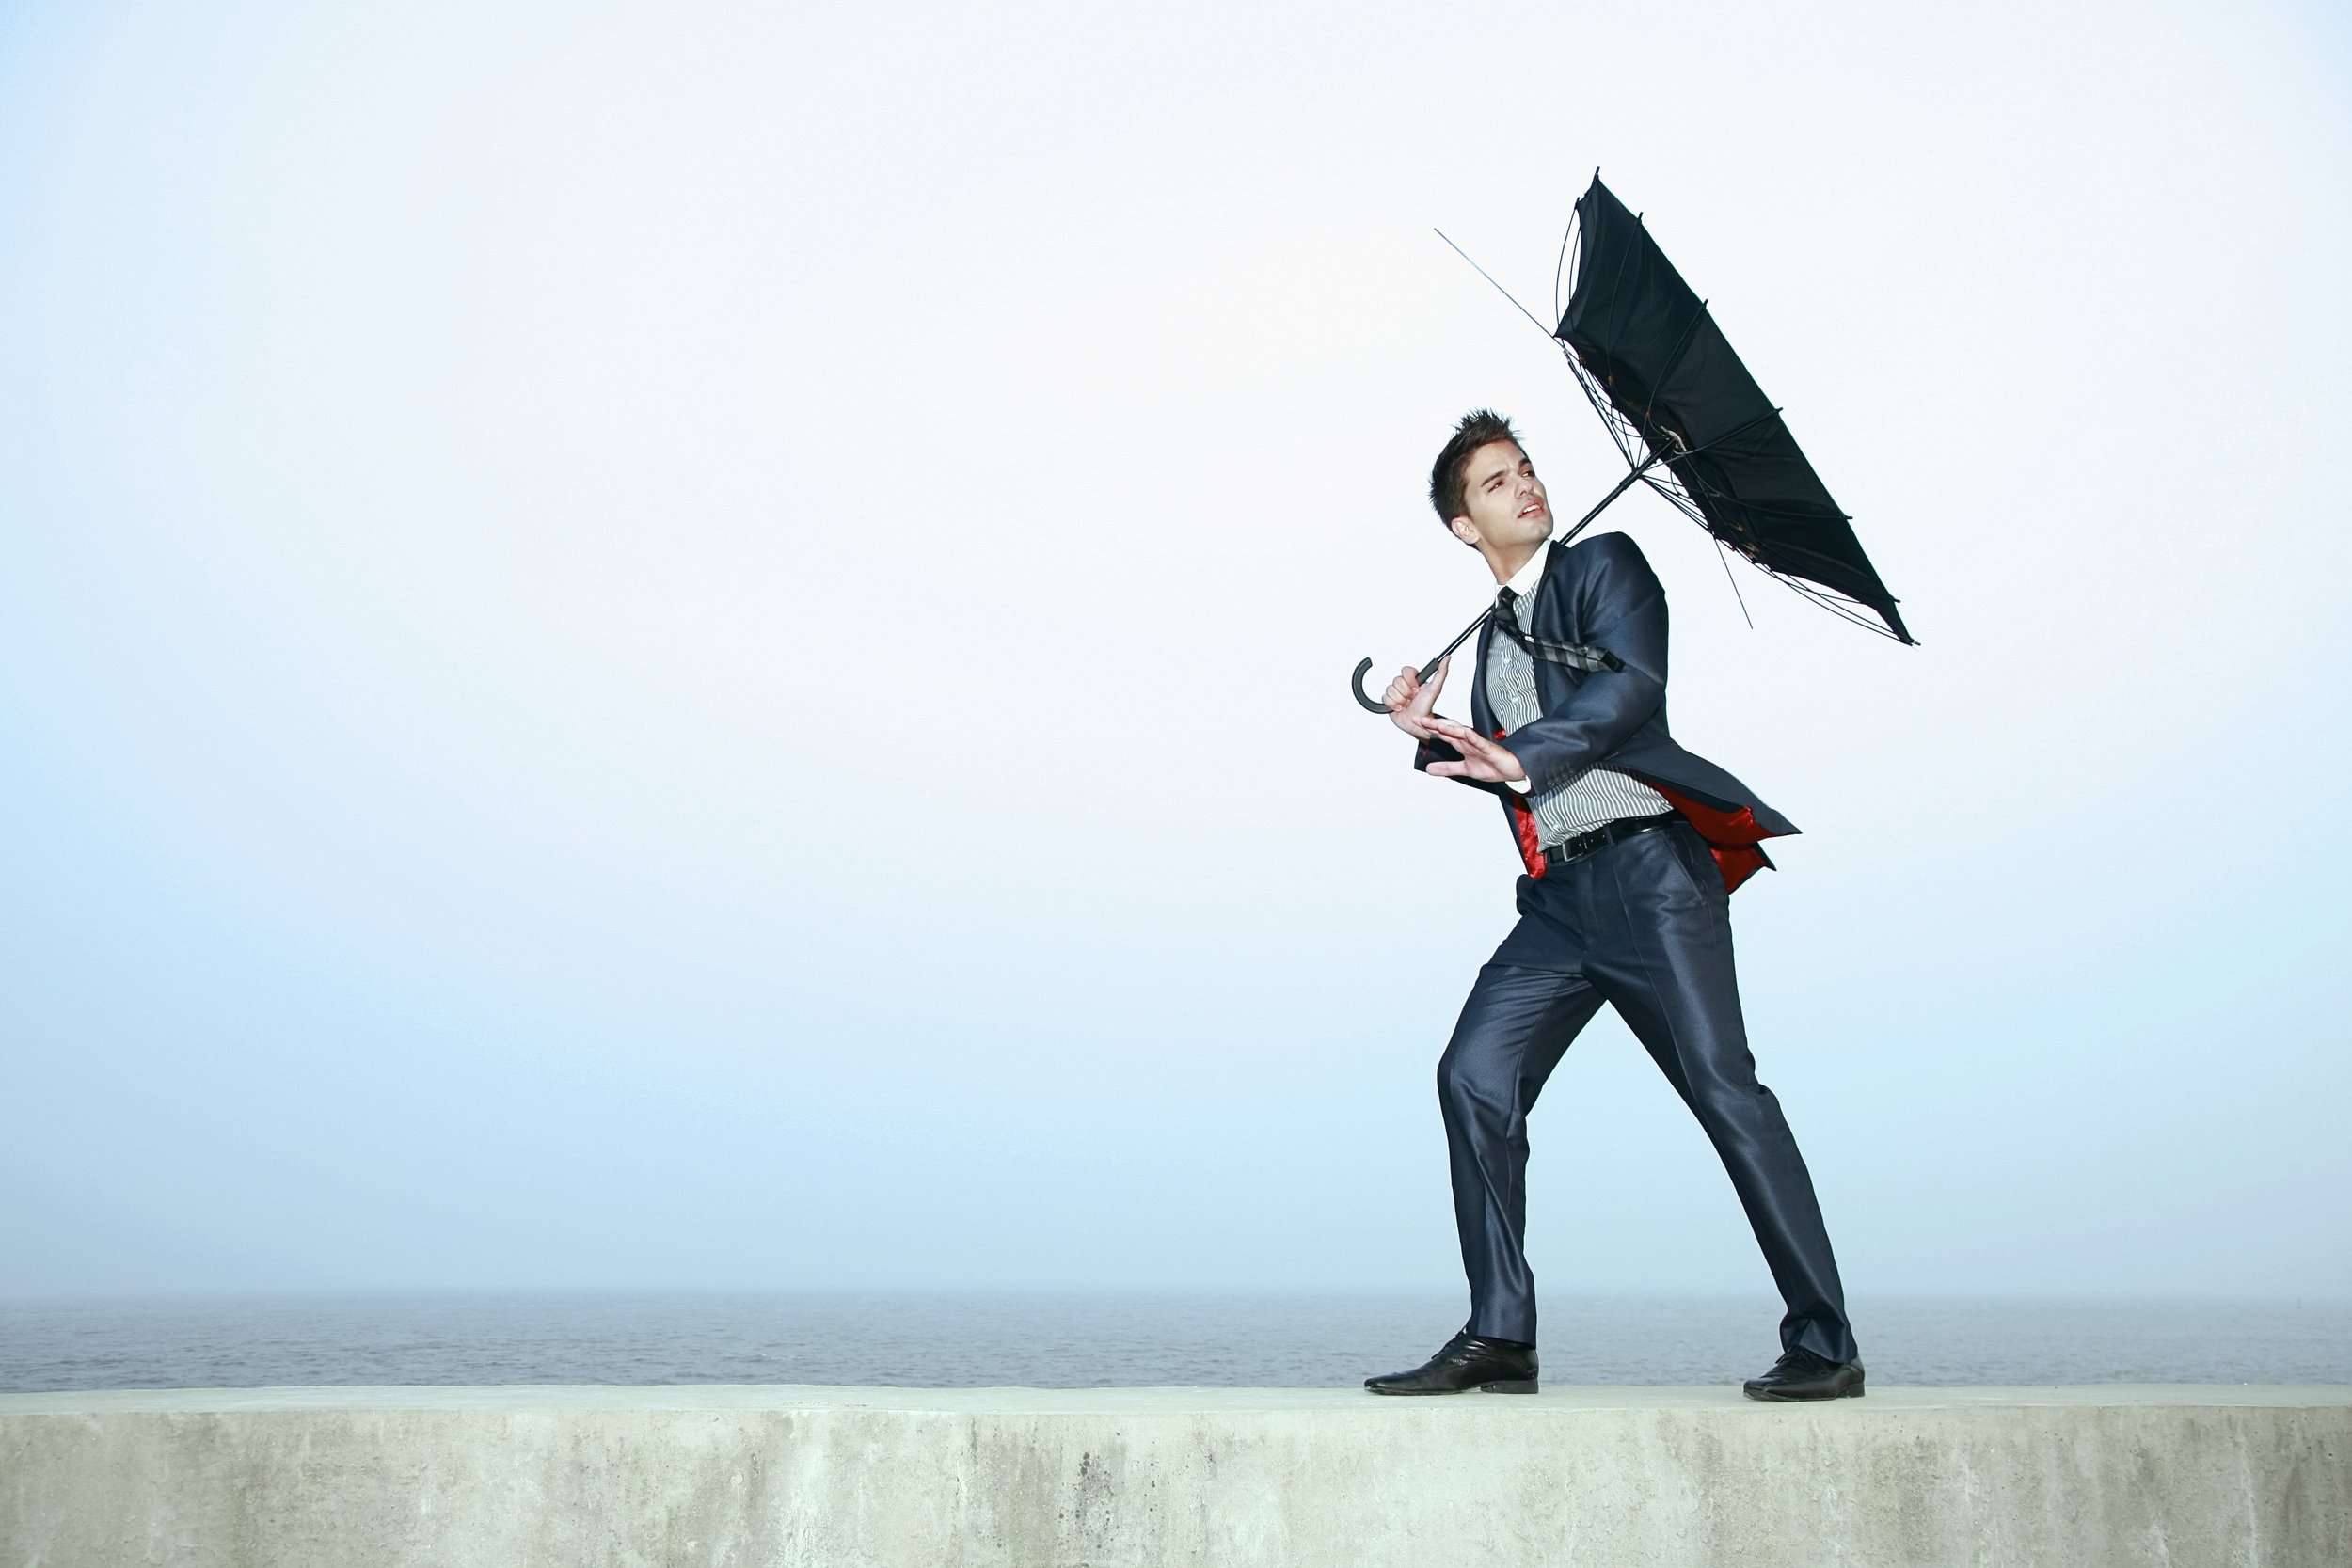 Man struggles with an inside-out umbrella in the wind.